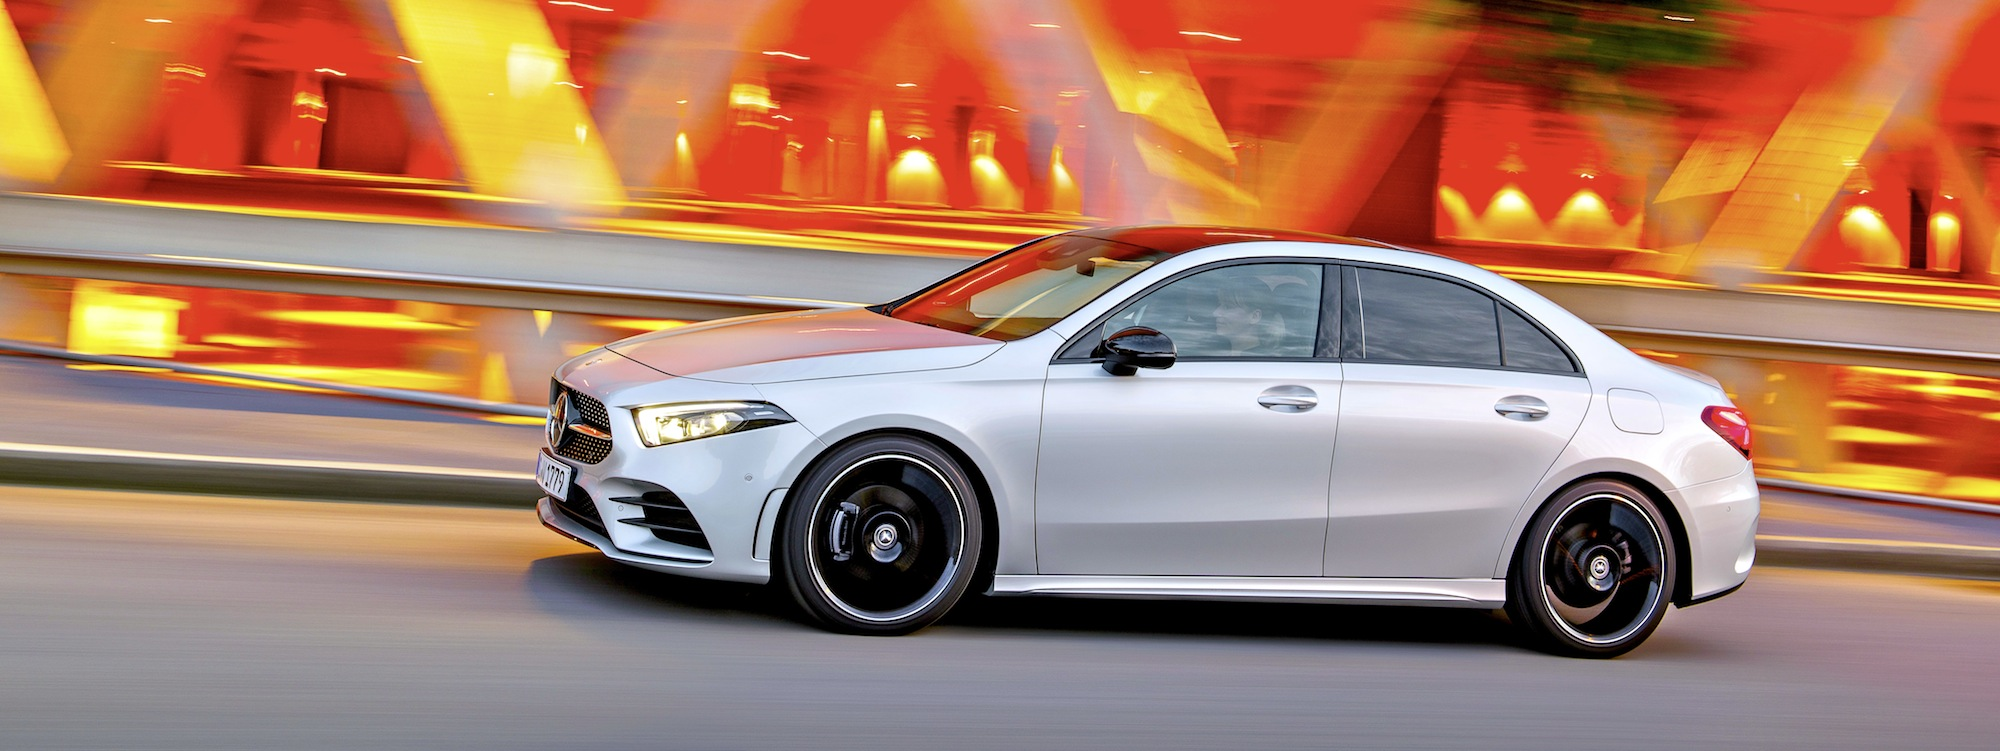 2019 Mercedes-Benz A-Class Sedan: New Baby Benz Is A High-Tech Showcase